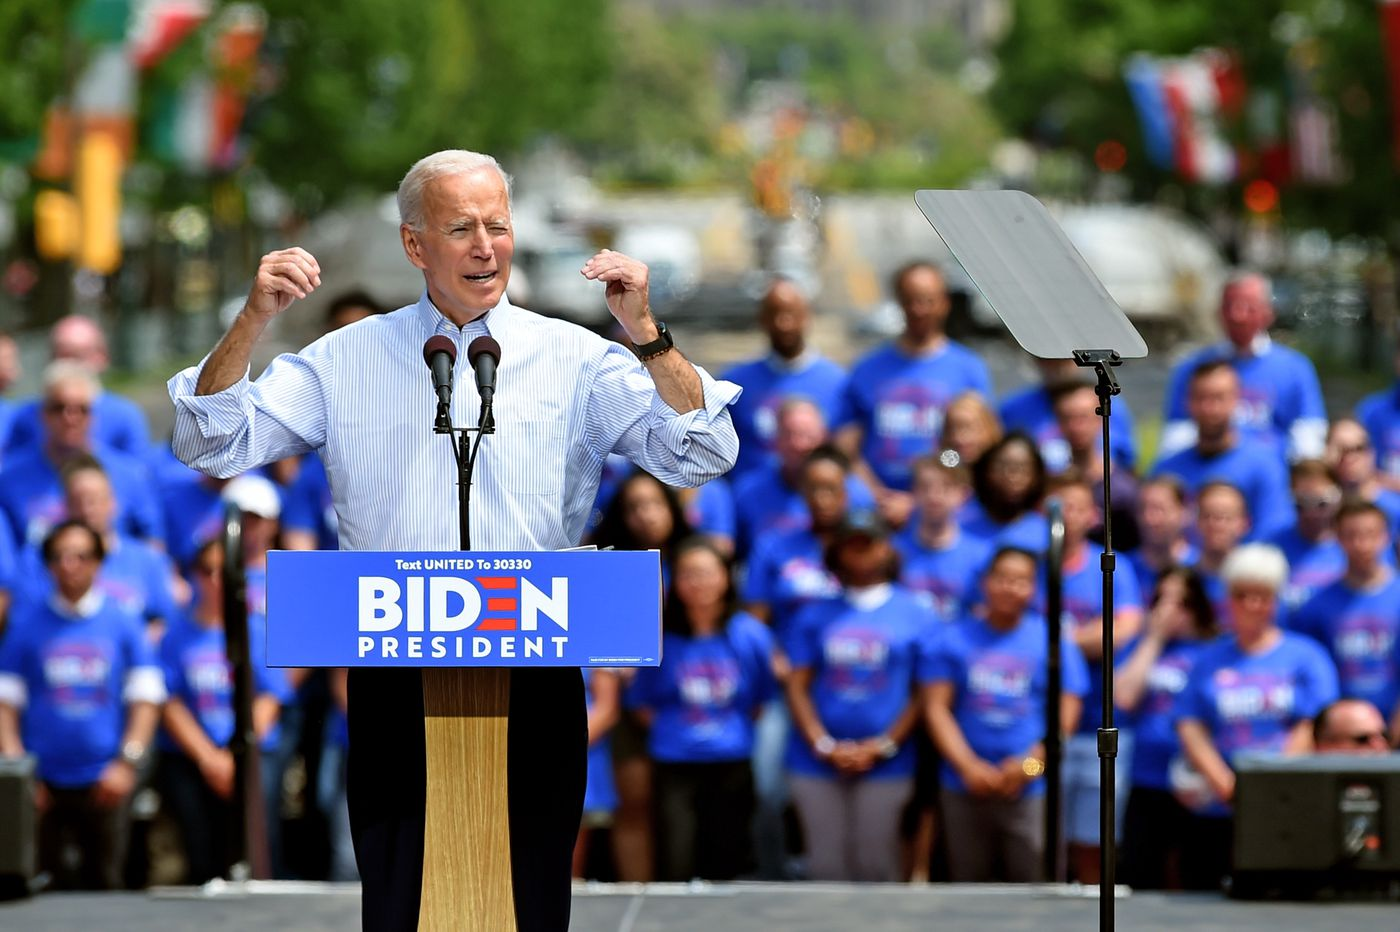 Joe Biden's campaign office opens in Philly with a protest, not a party | Clout